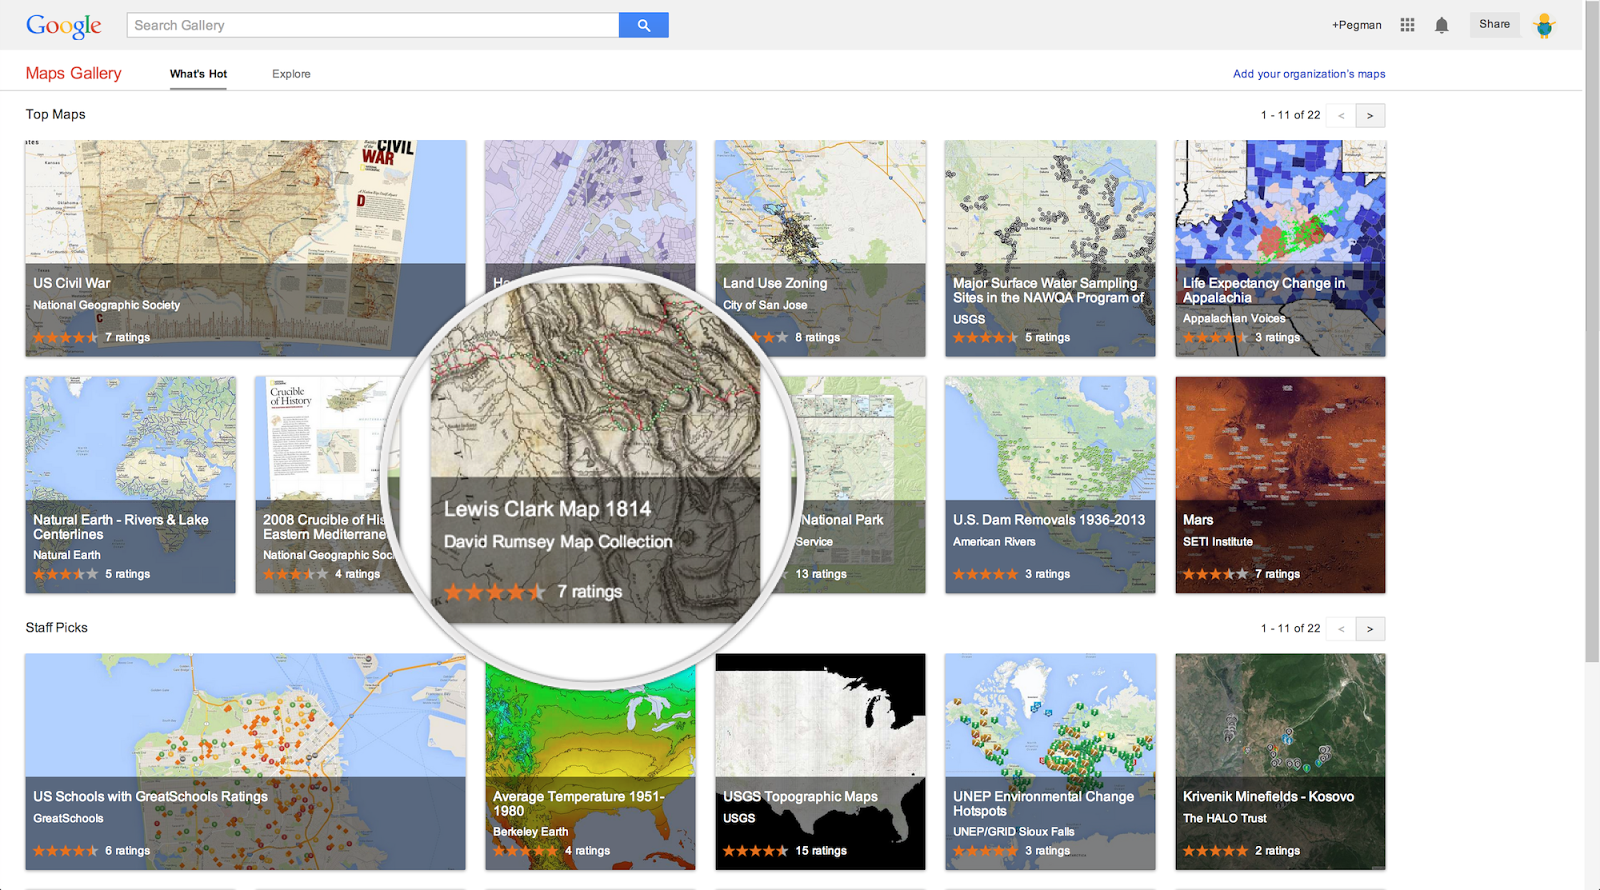 Google lat long introducing google maps gallery unlocking the well now with the new google maps gallery its easier for you to find maps like those all in one place gumiabroncs Image collections